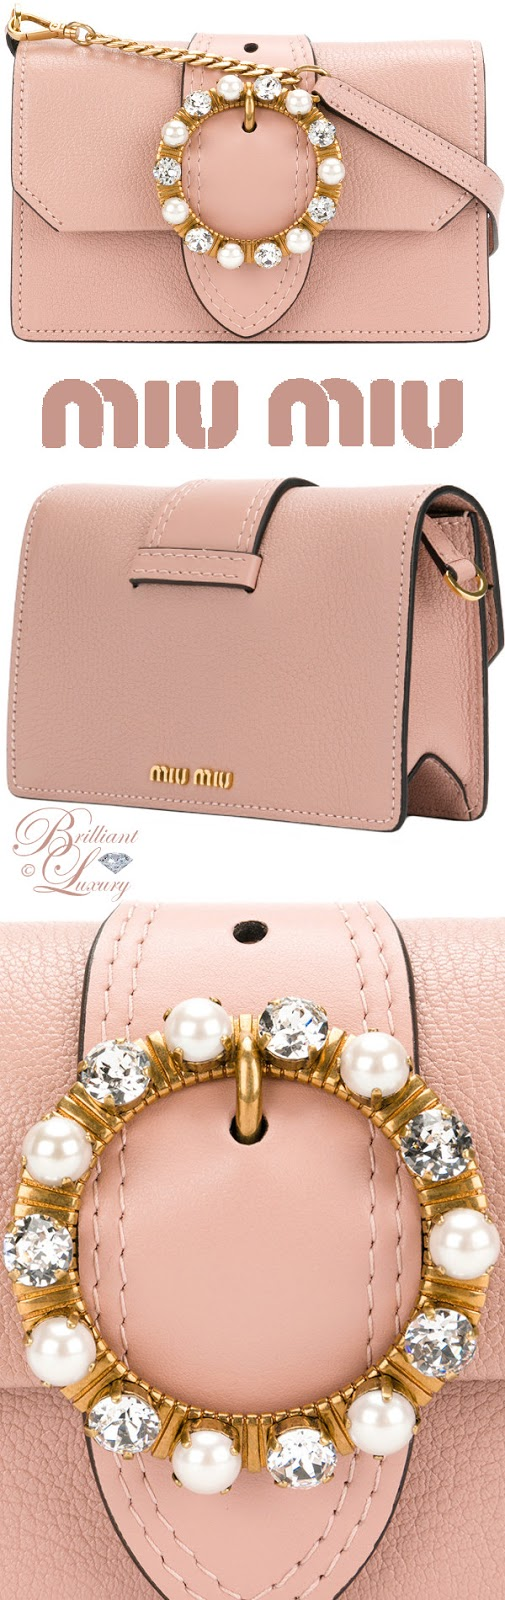 Brilliant Luxury ♦ Miu Miu mini pink leather crystal buckle Lady bag